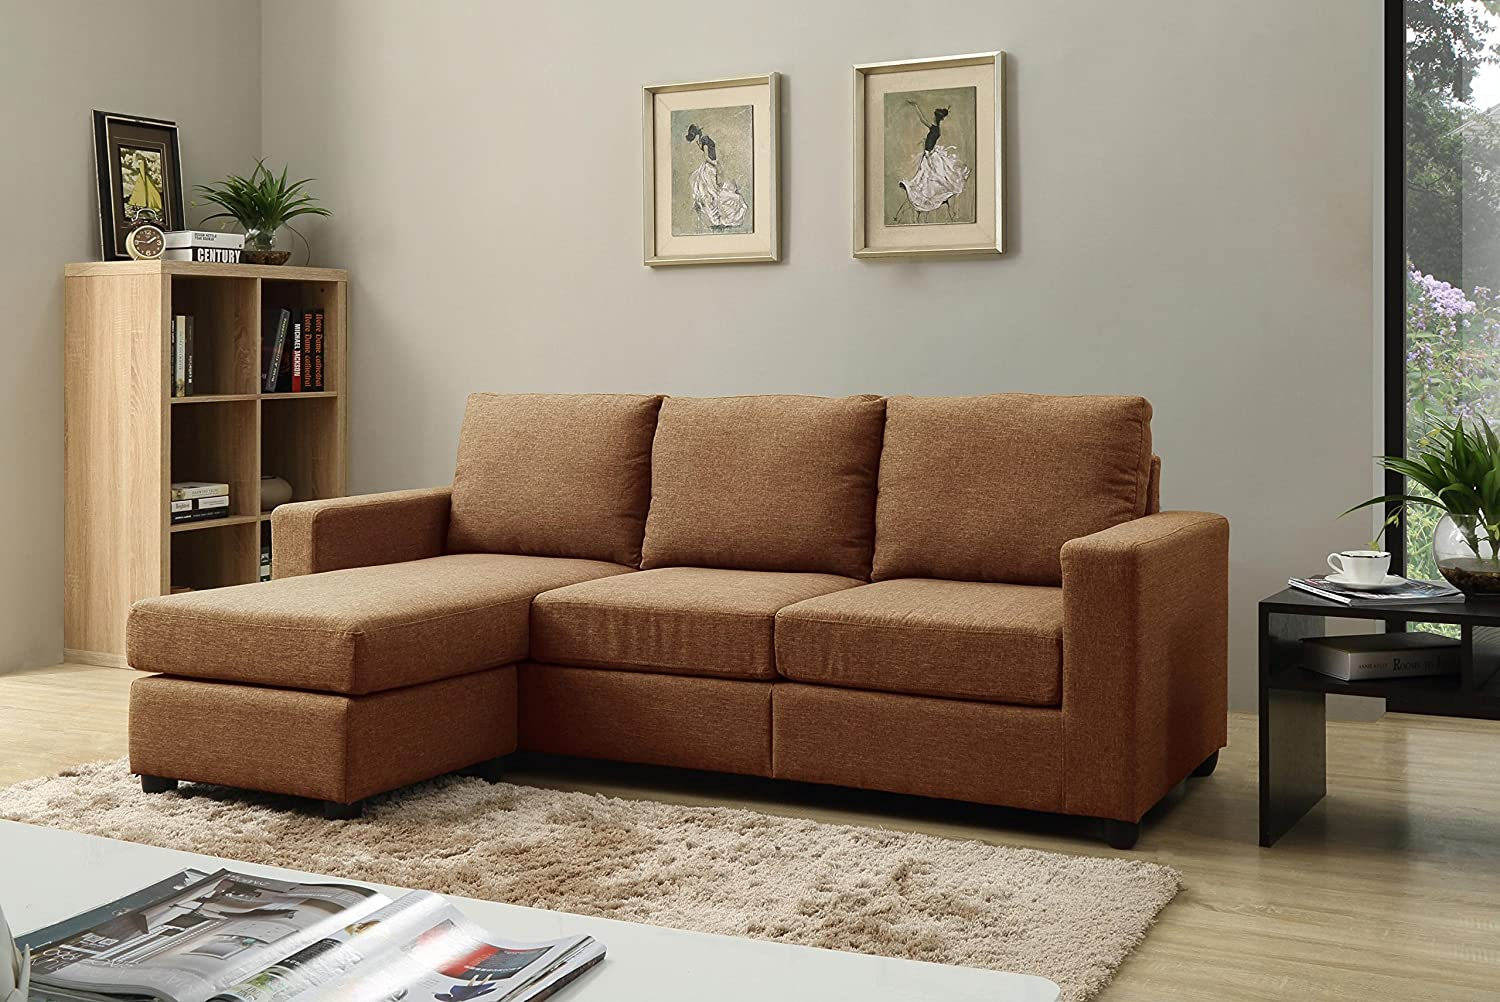 Charmant Amazon.com: NHI Express Alexandra Convertible Sectional Sofa, Brown:  Kitchen U0026 Dining